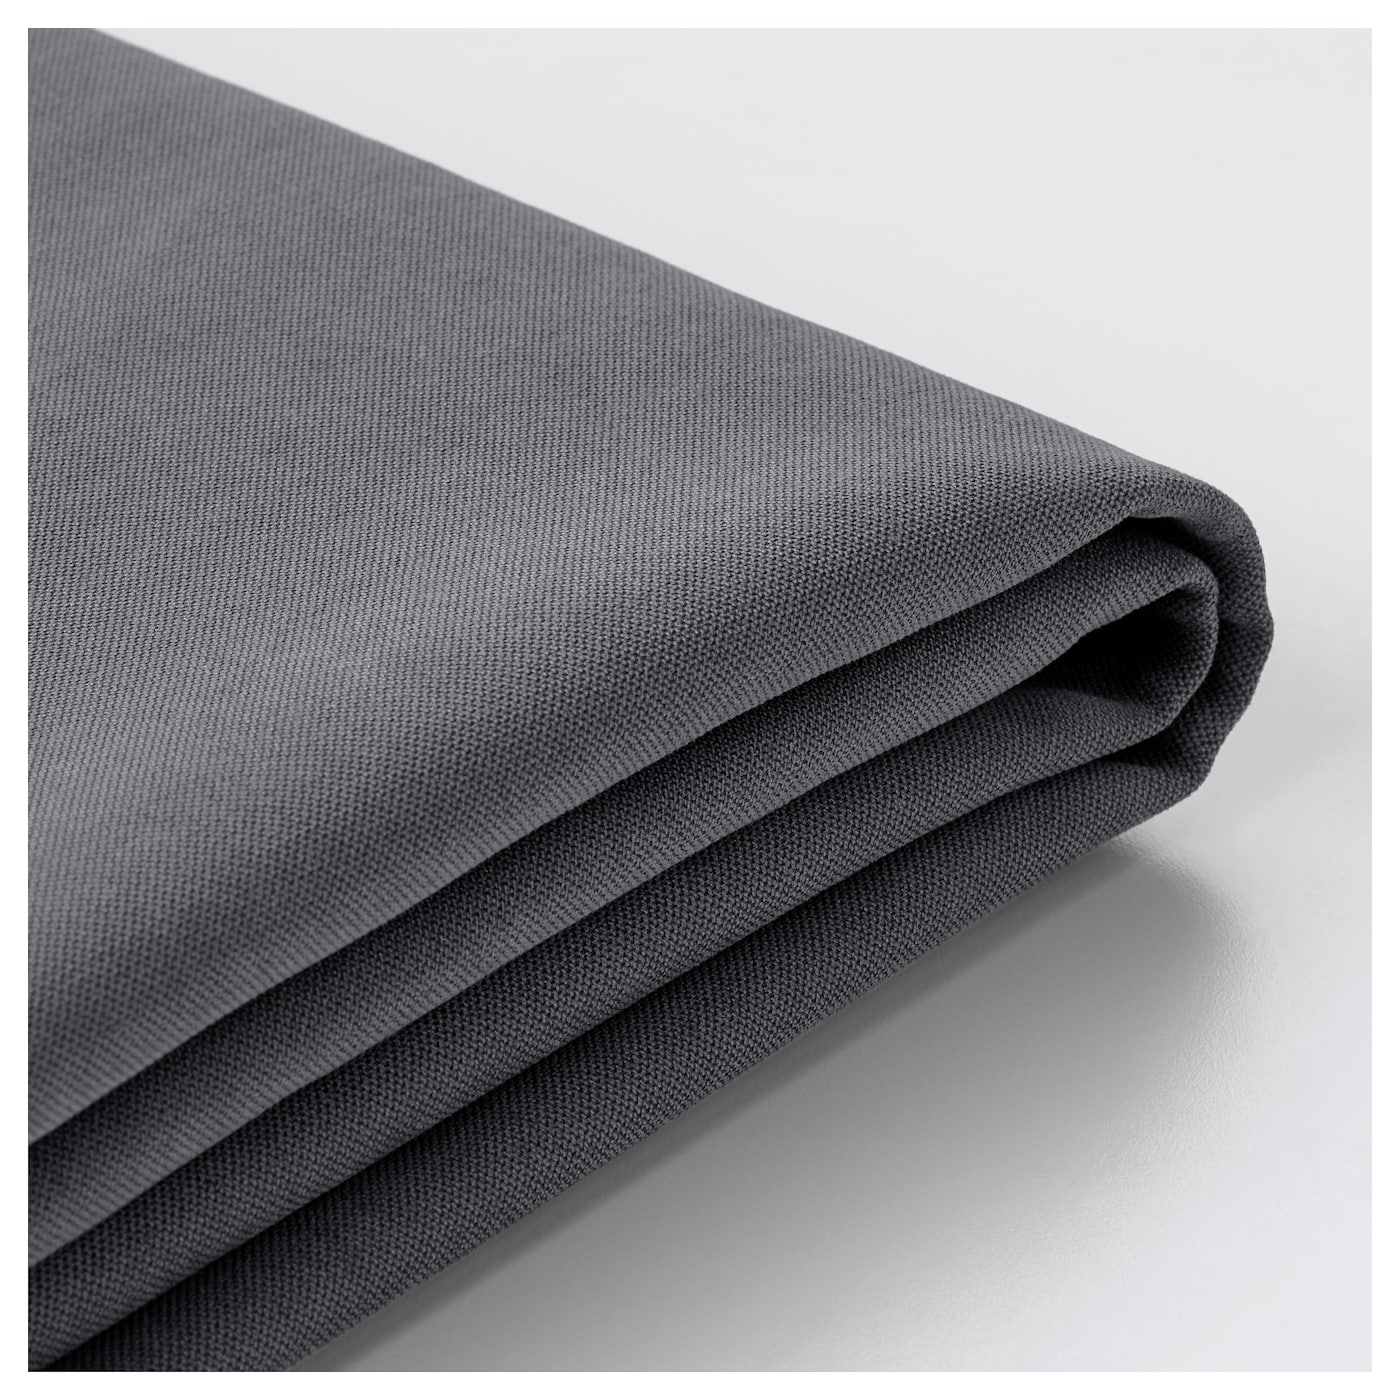 IKEA SÖDERHAMN corner section cover Hardwearing microfibre which is soft and smooth.